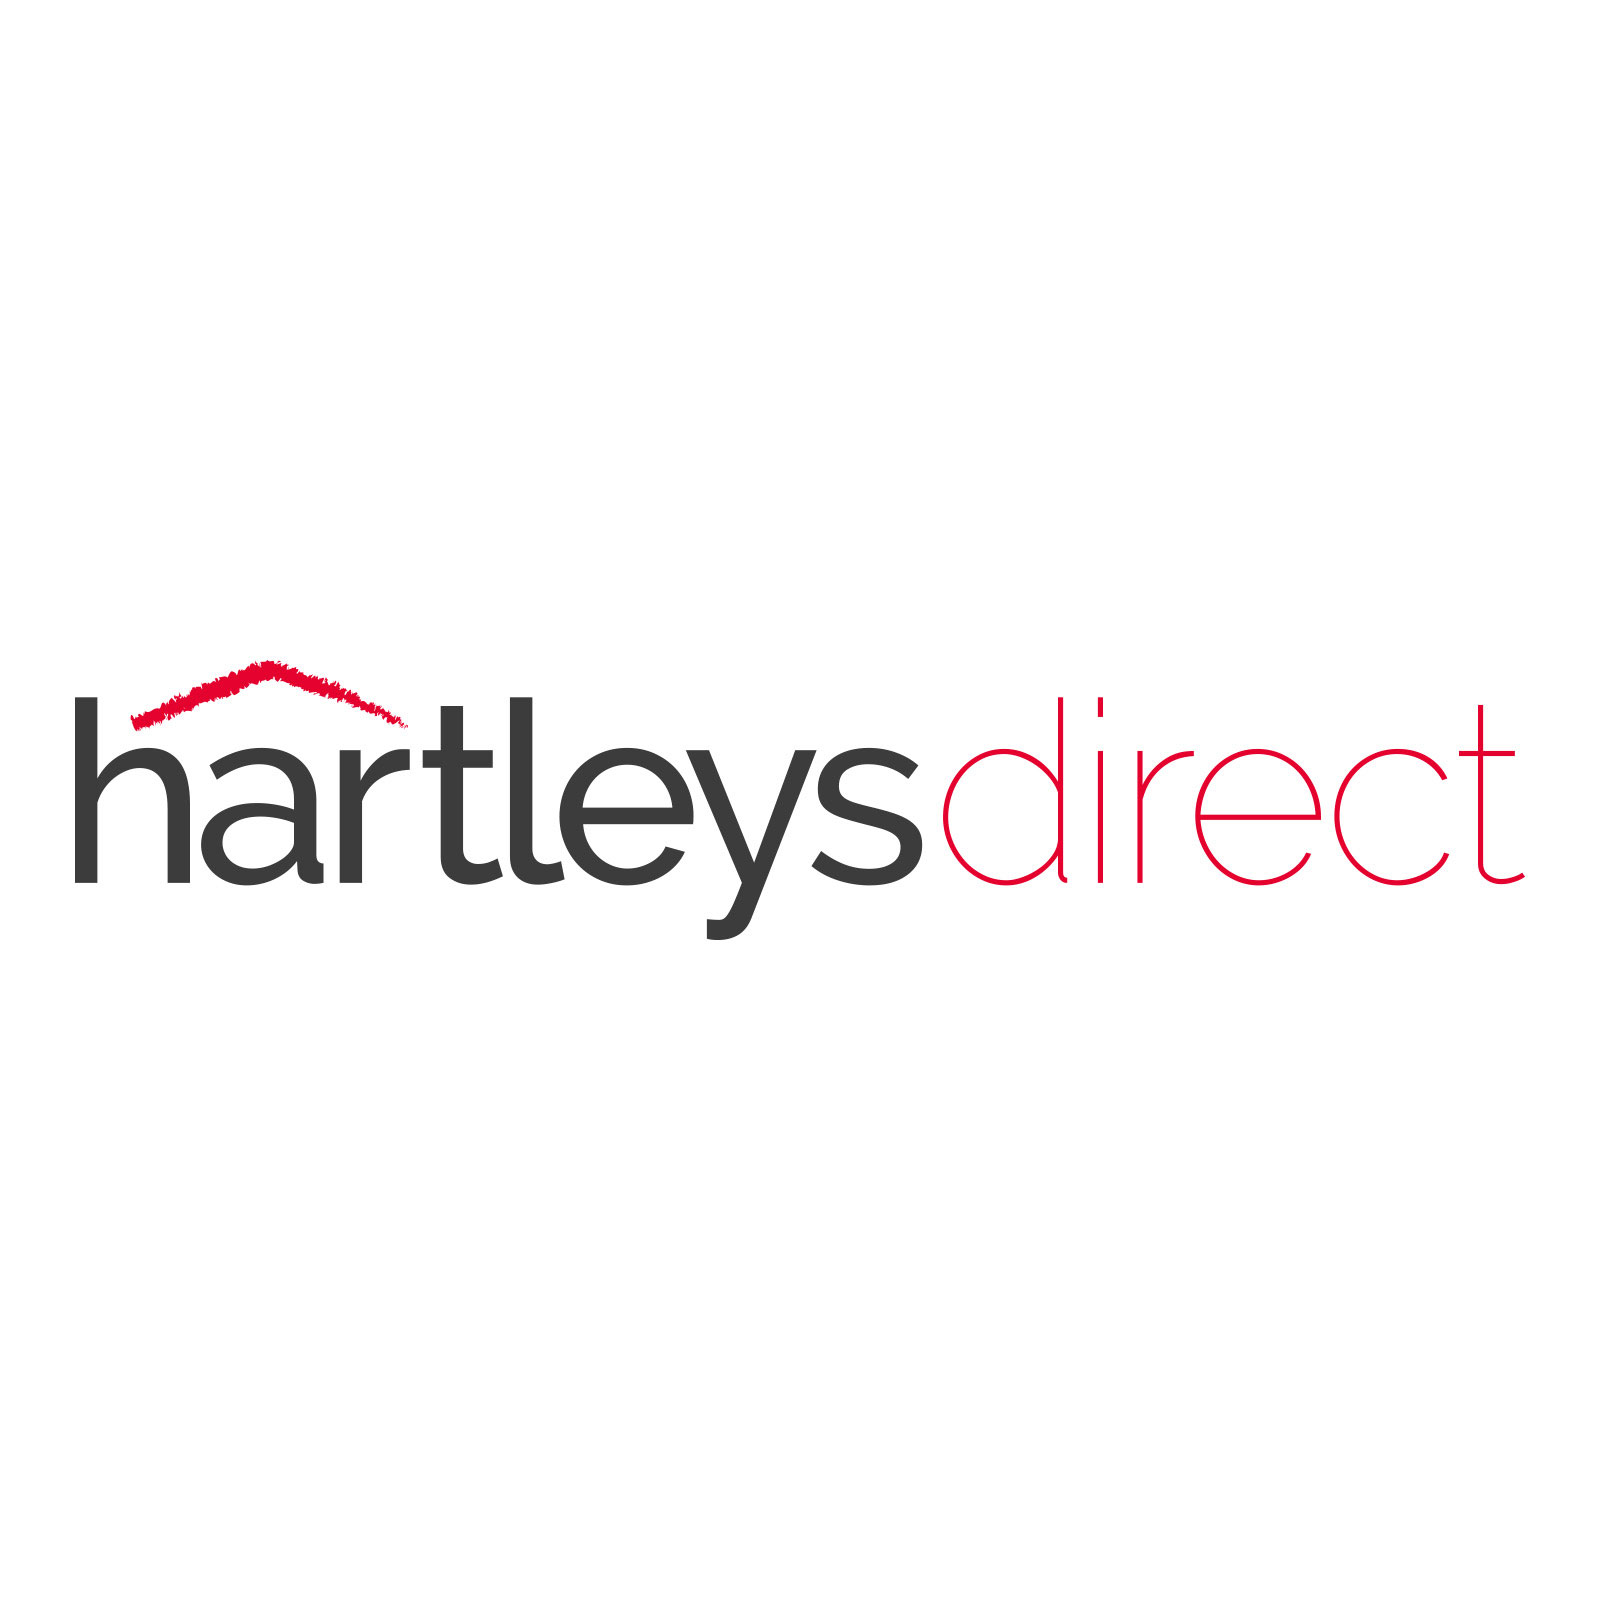 Hartleys-3-Tier-Black-Cube-Unit-with-3-White-Box-Drawers-and-Colours-on-White-Background.jpg